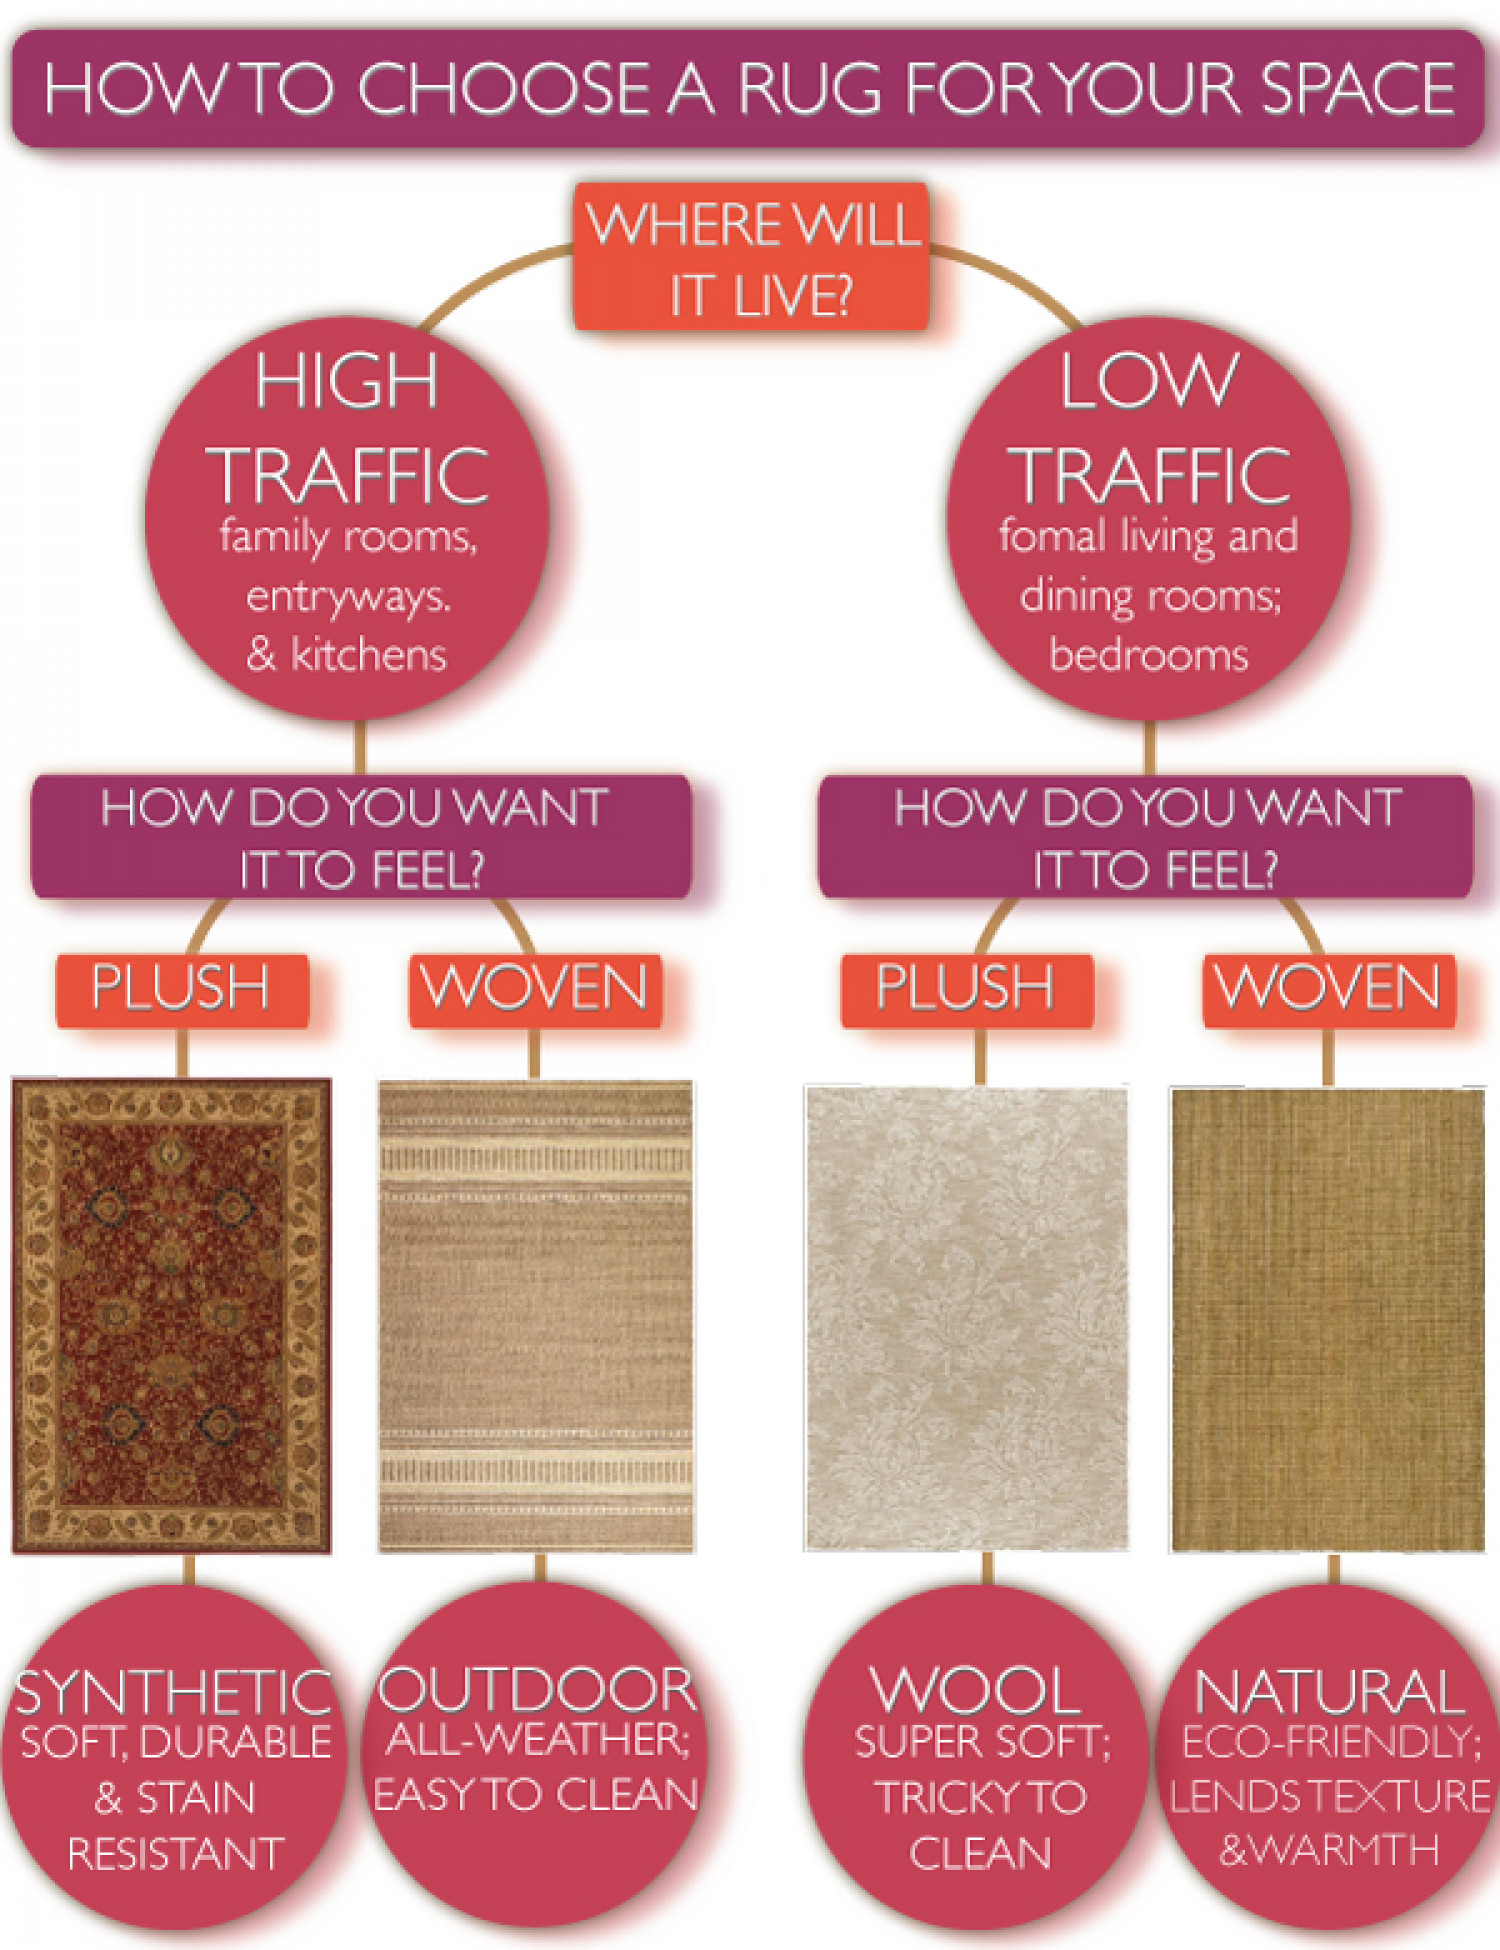 How To Choose a Rug for Your Space Infographic